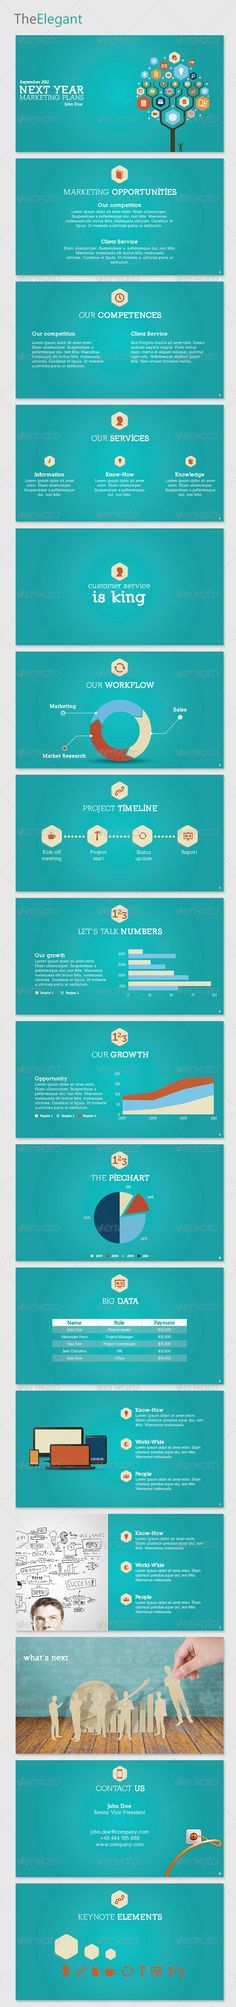 124 best keynote themes templates images on pinterest keynote buy theelegant keynote template by improvepresentation on graphicriver clean elegant and modern business presentation template for keynote toneelgroepblik Images